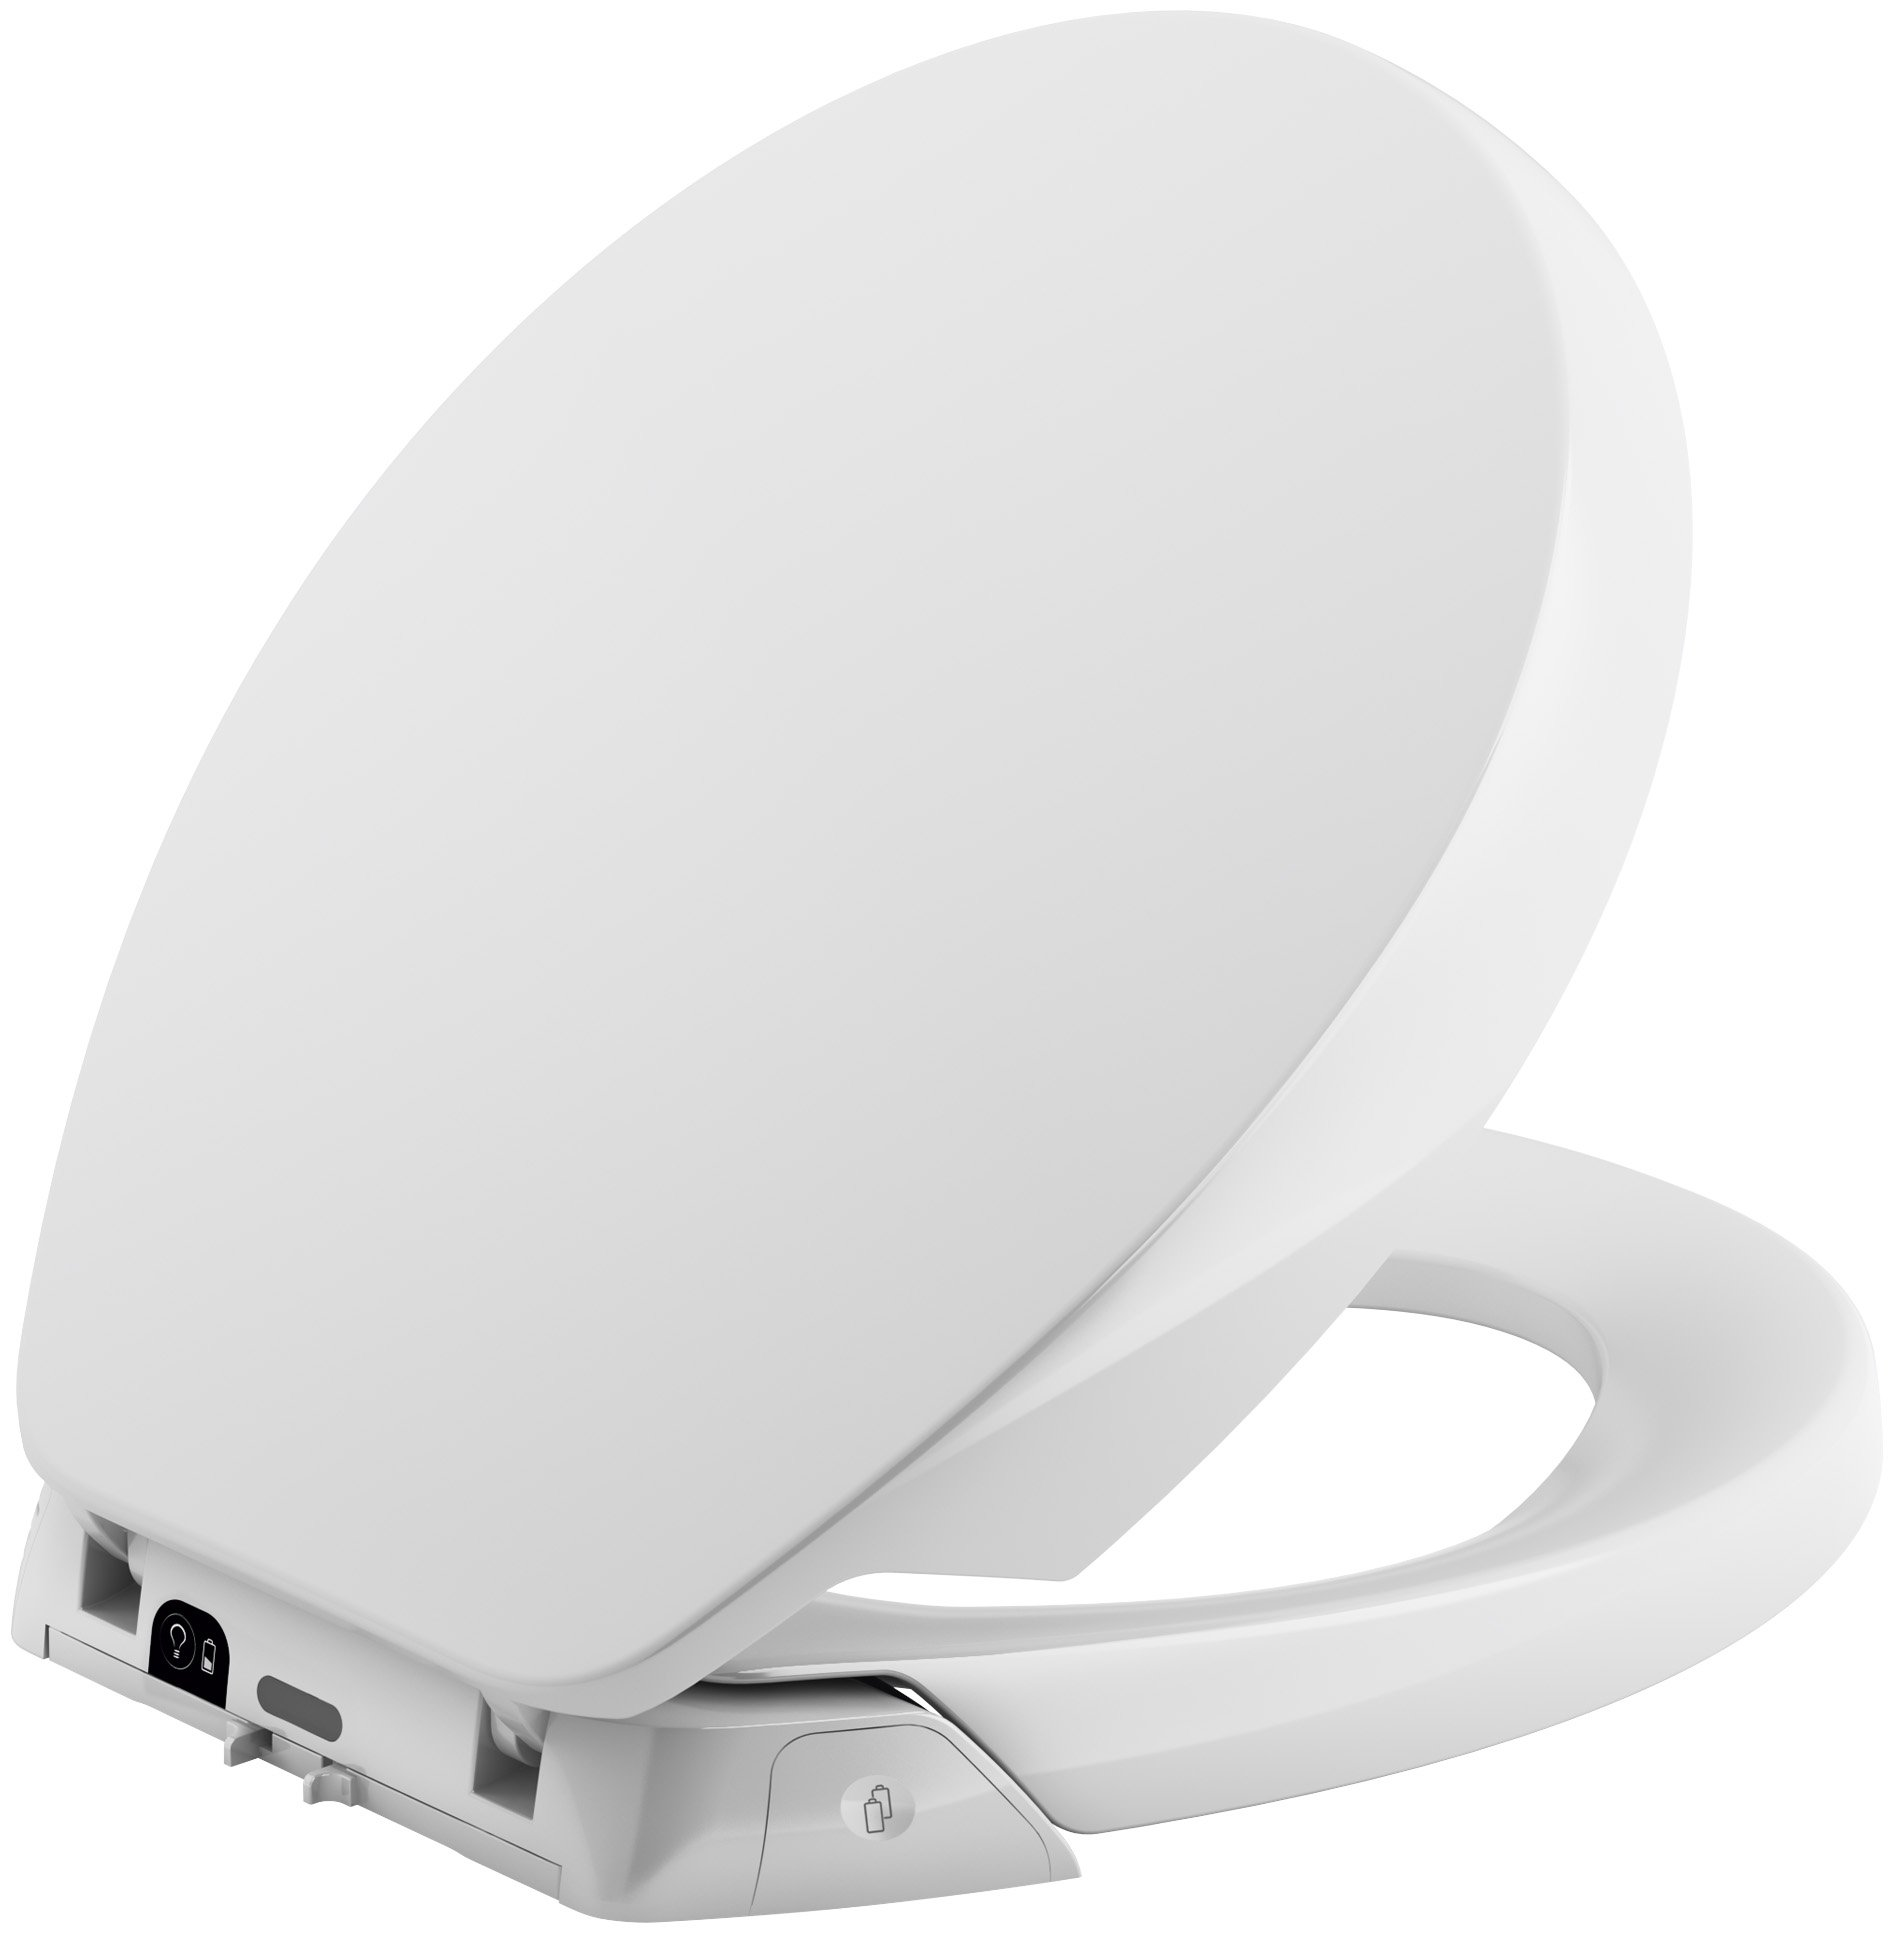 KOHLER K-5589-0 Purefresh Quiet-Close with Grip-Tight Bumpers Round-front Toilet Seat, White